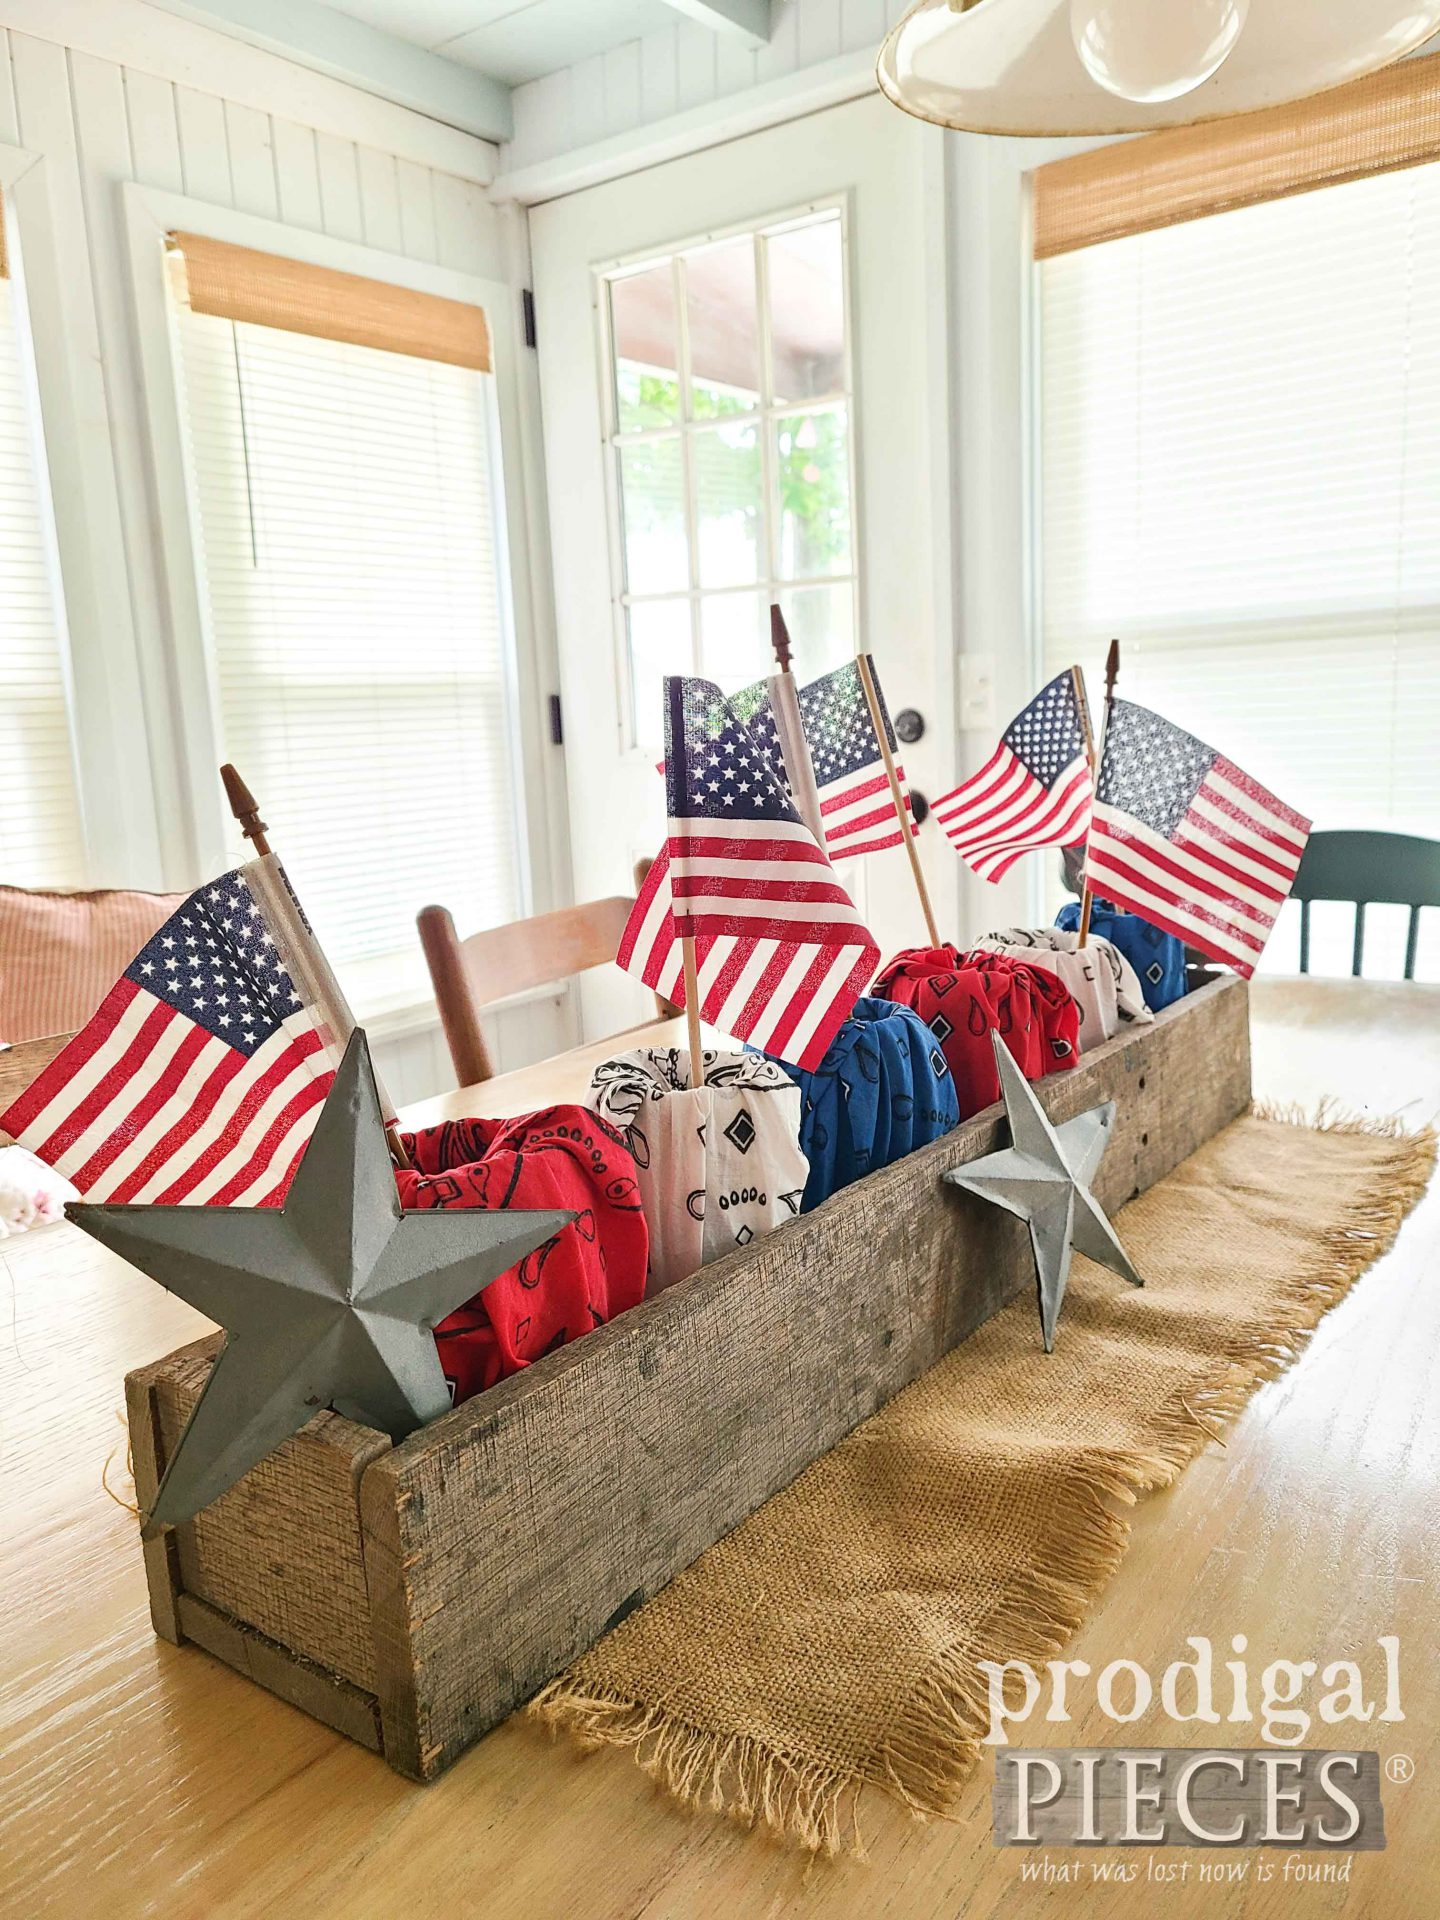 Reclaimed Wood Centerpiece Filled with Farmhouse Patriotic Decor by Larissa of Prodigal Pieces | prodigalpieces.com #prodigalpieces #farmhouse #independenceday #4thofjuly